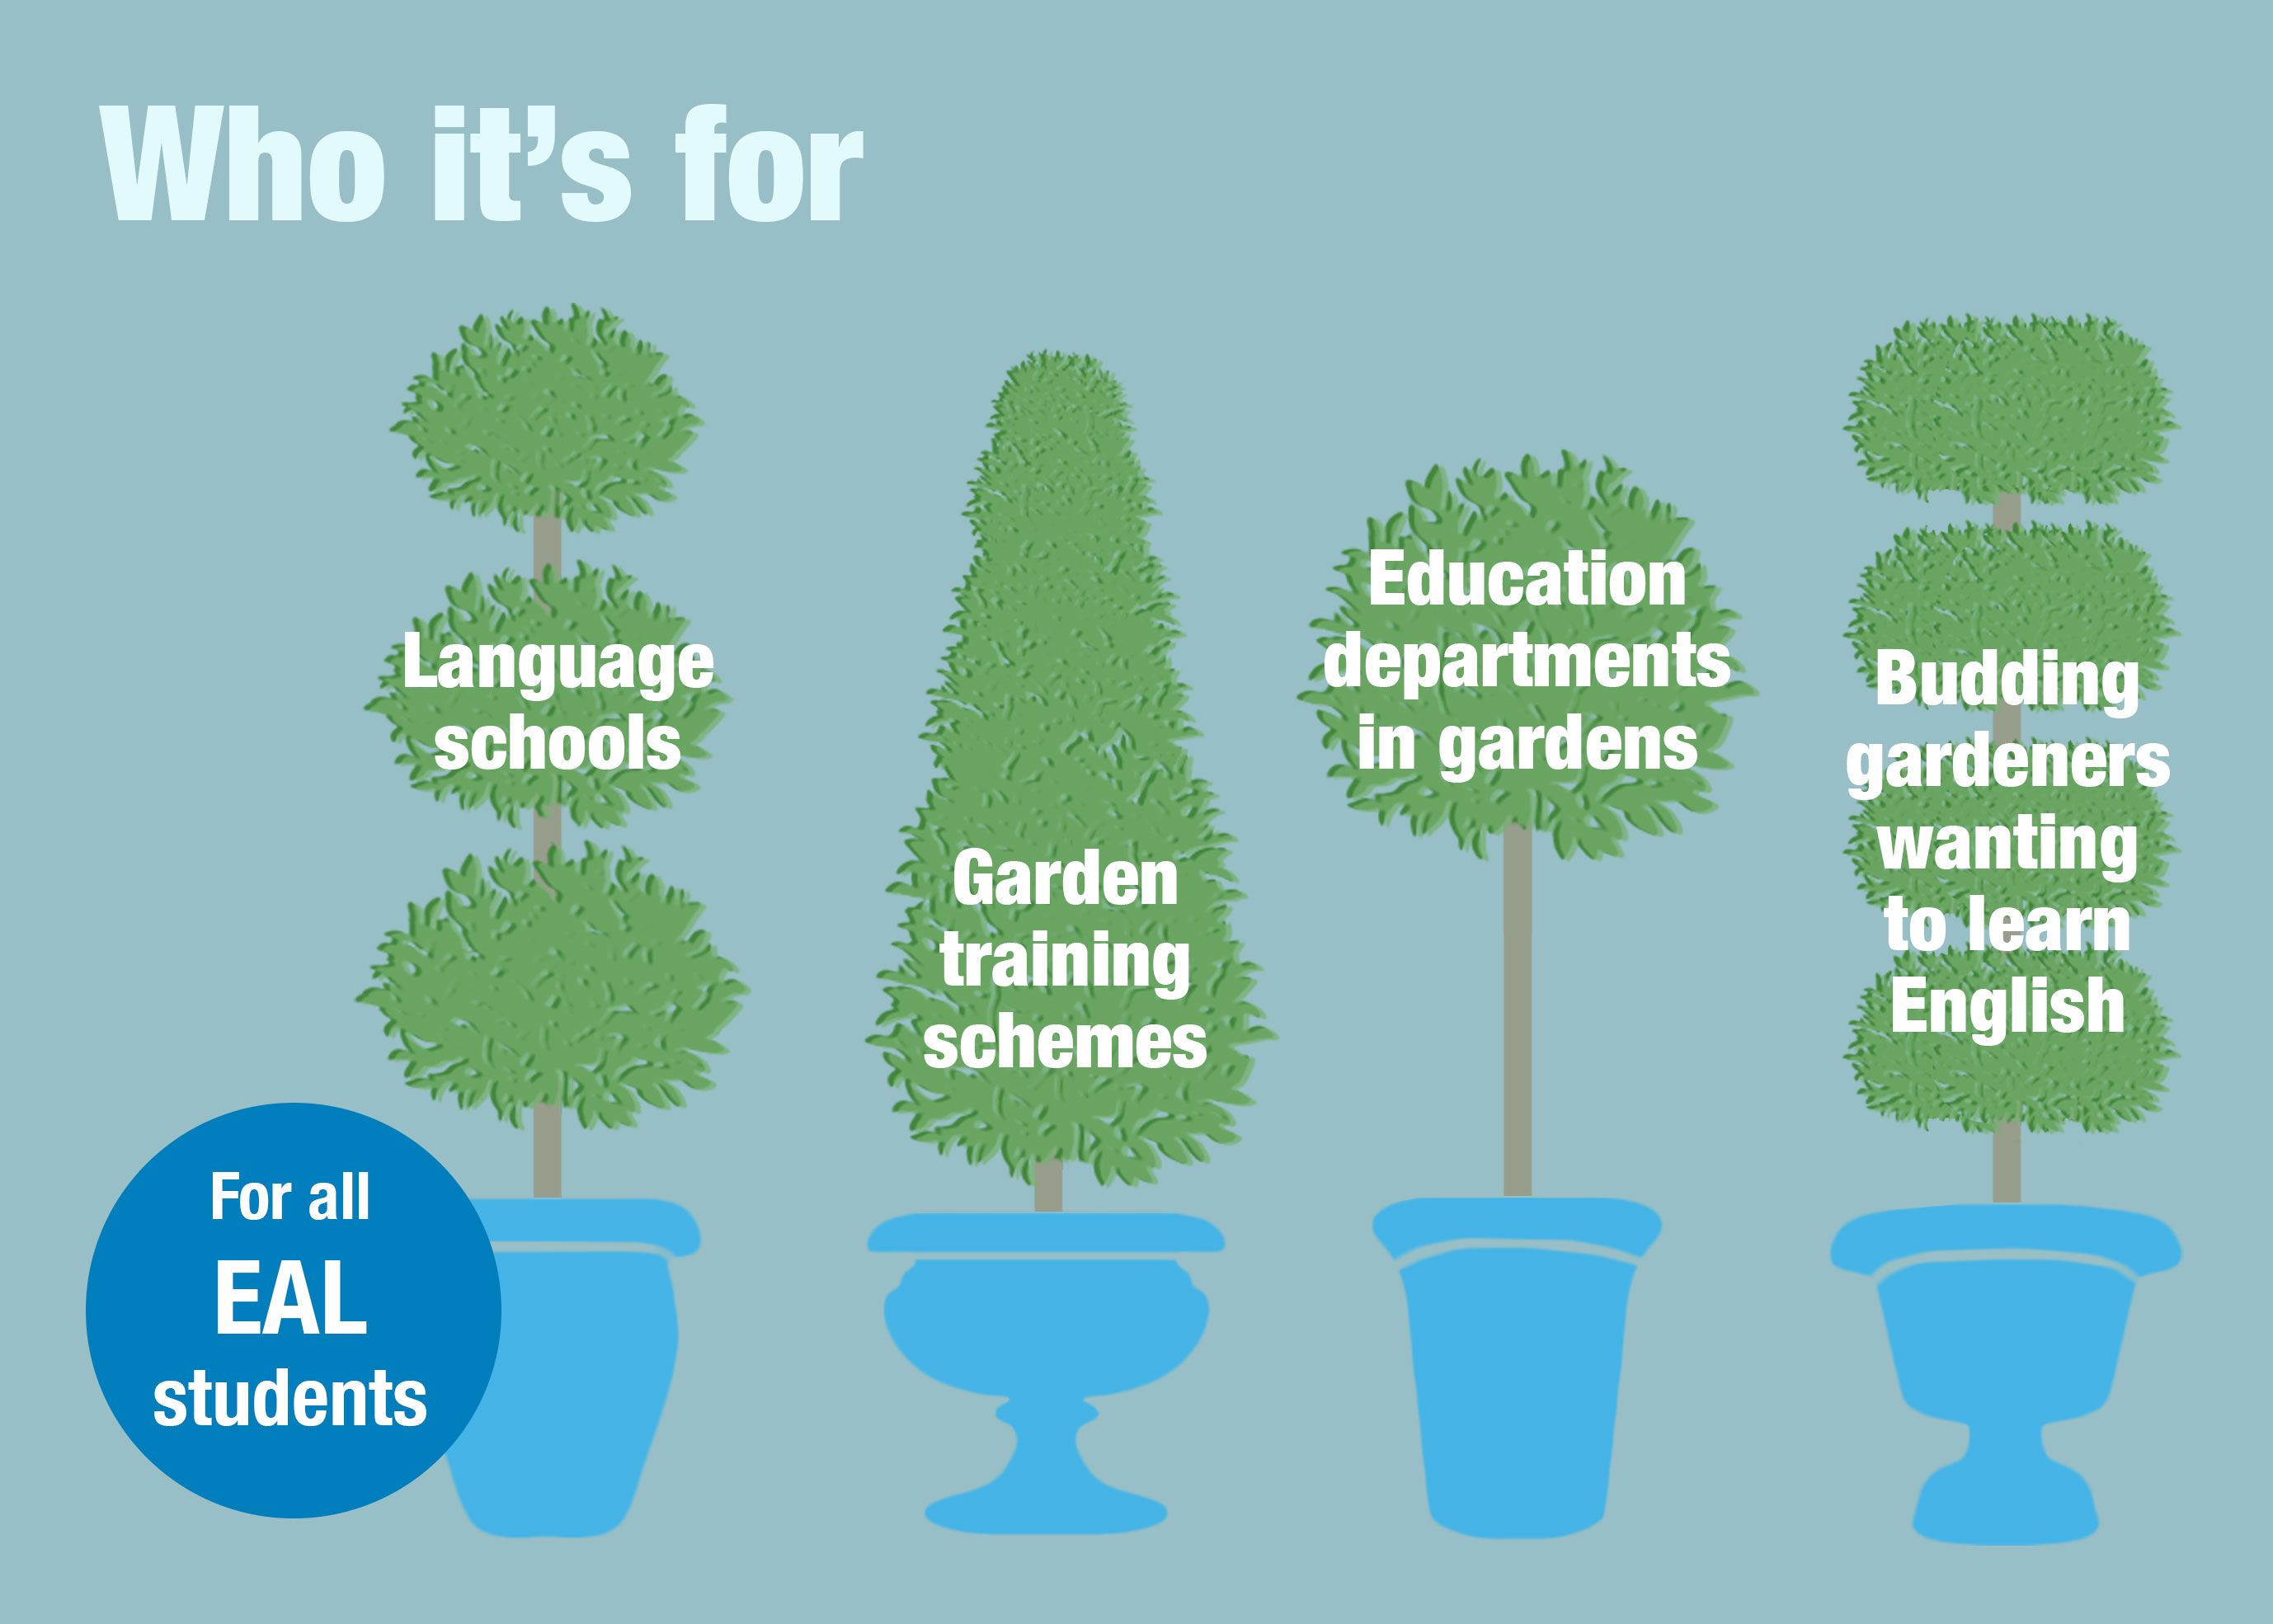 ETG - For all EAL Students - gardens, training schemes, language schools, individuals